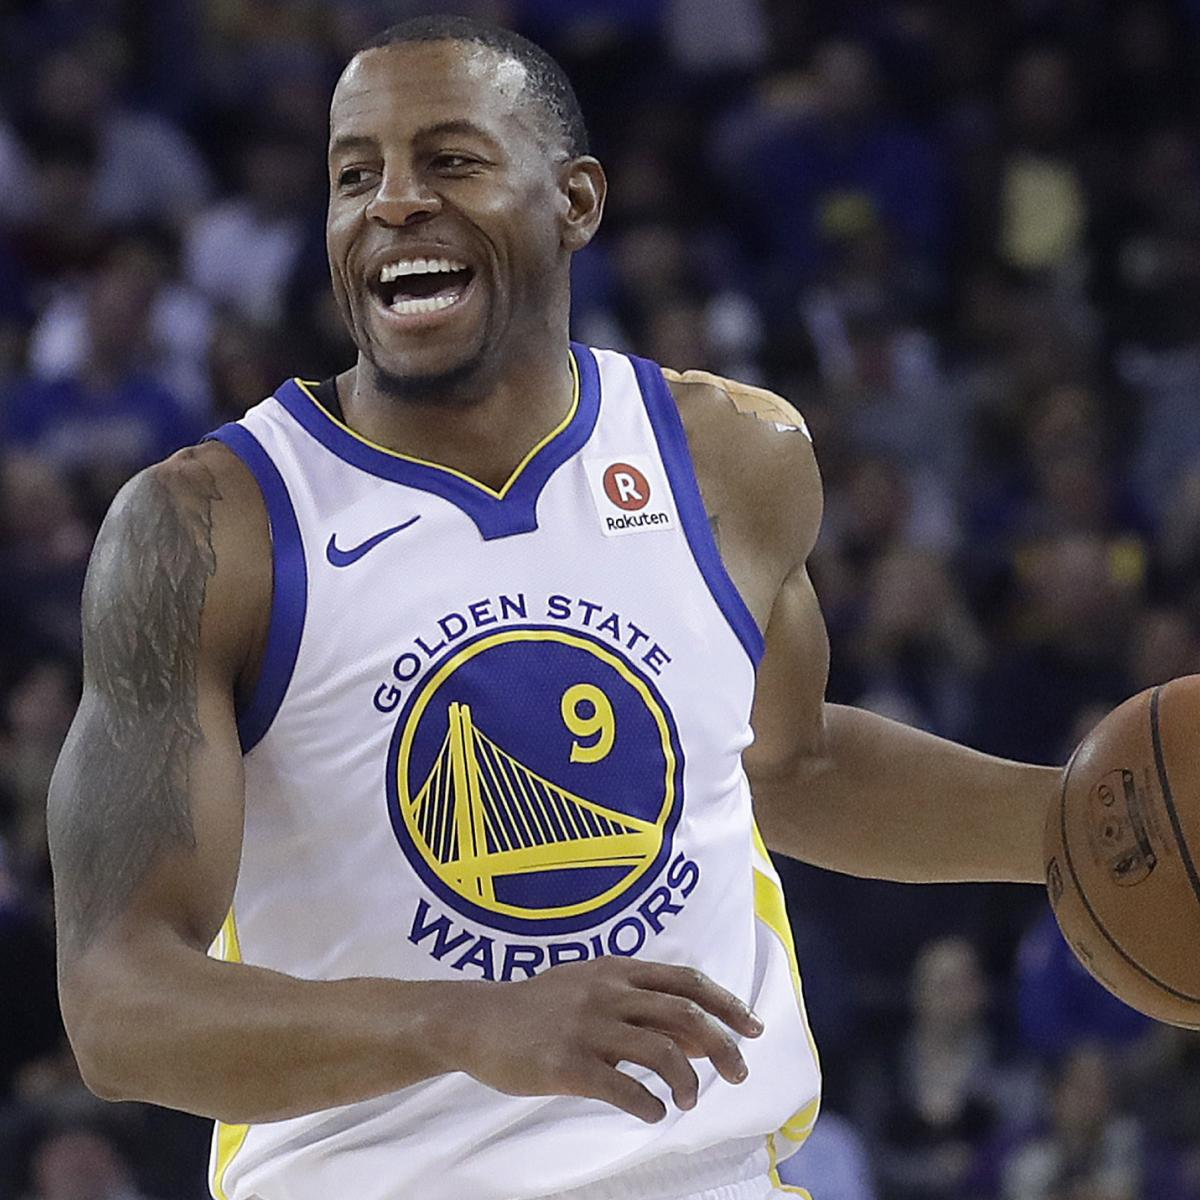 Warriors And Rockets Game Live Stream: Rockets Vs Warriors Live Online Free